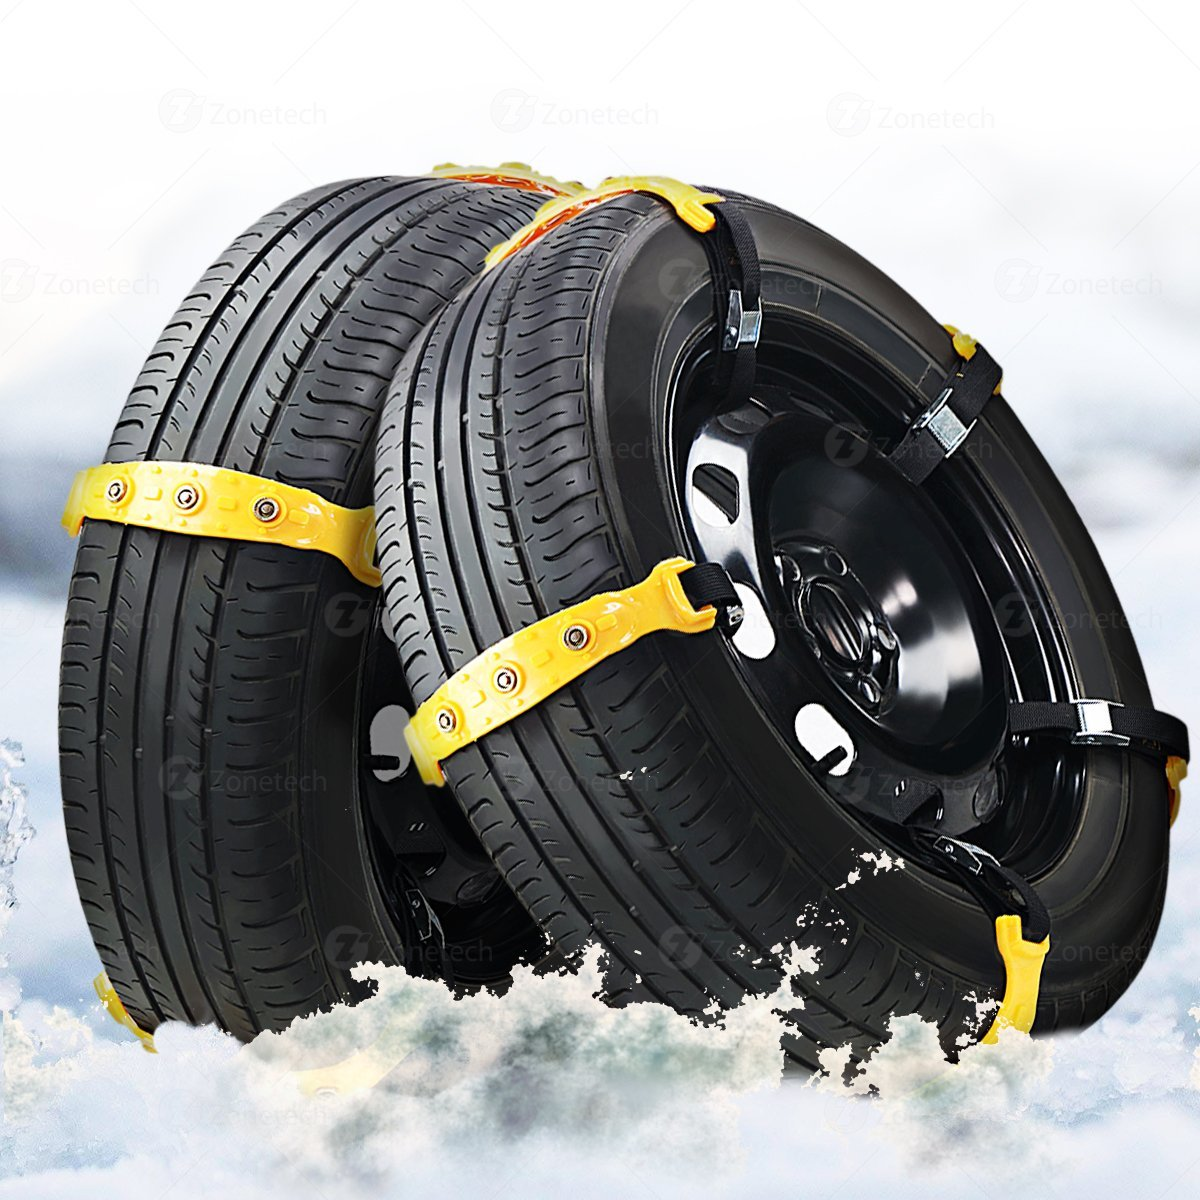 Zone Tech Car Snow Chains 10 Peices - Premium Quality Strong Durable All Season Anti-Skid Car, SUV, and Pick Up Tire Chains for Emergencies and Road Trip